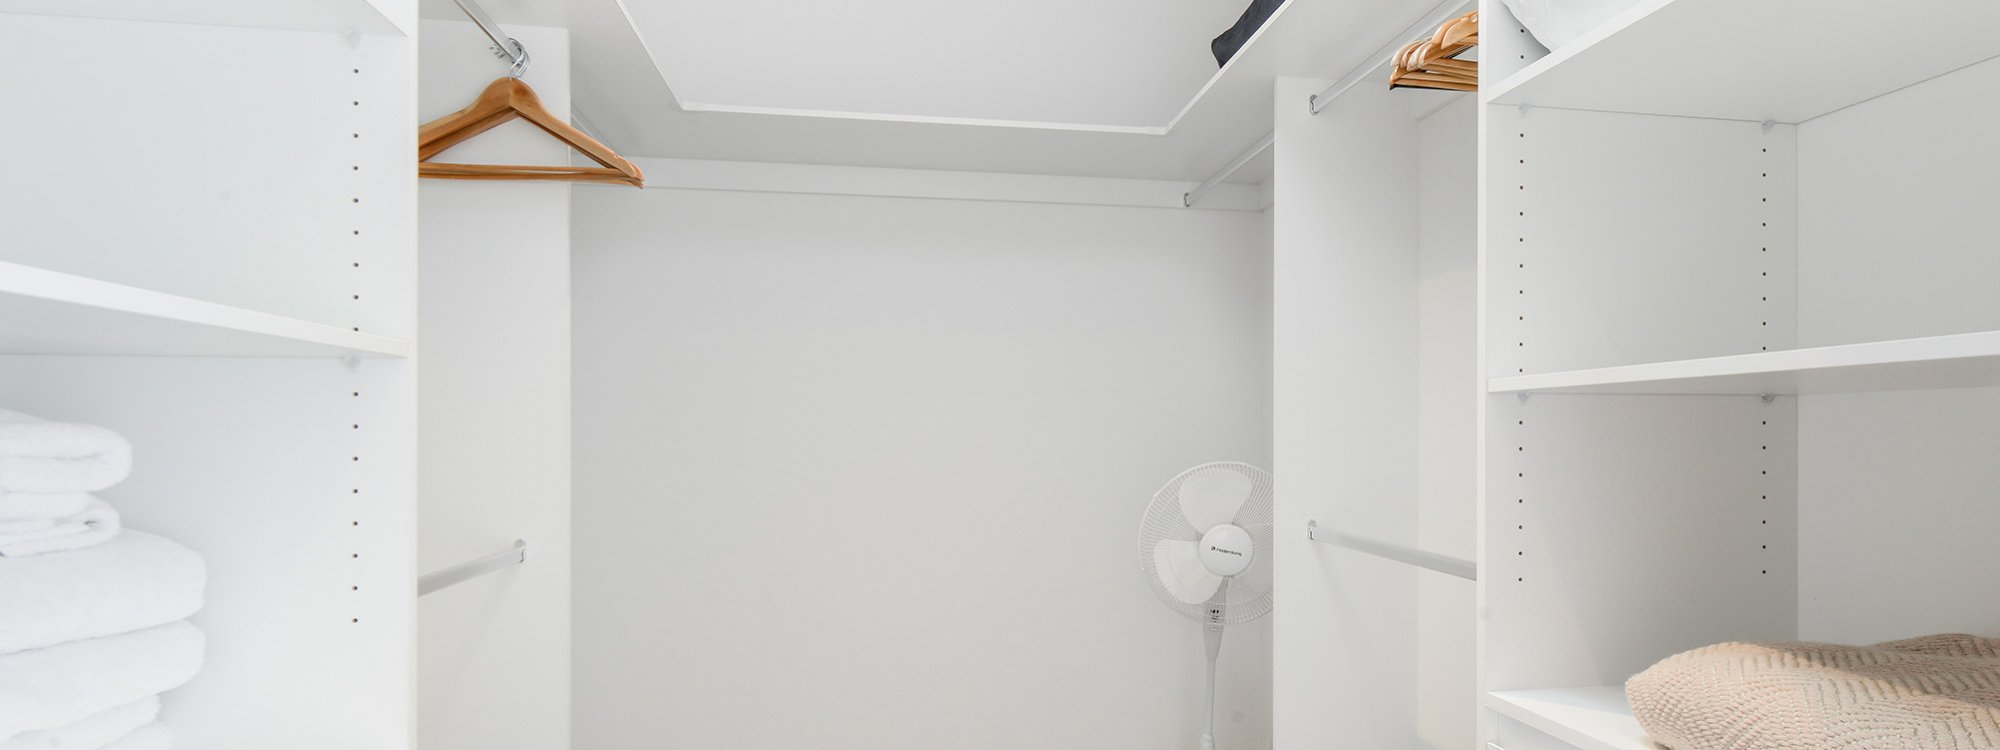 Murrumbeena Place 1 - Murrumbeena - Walk-in Closet